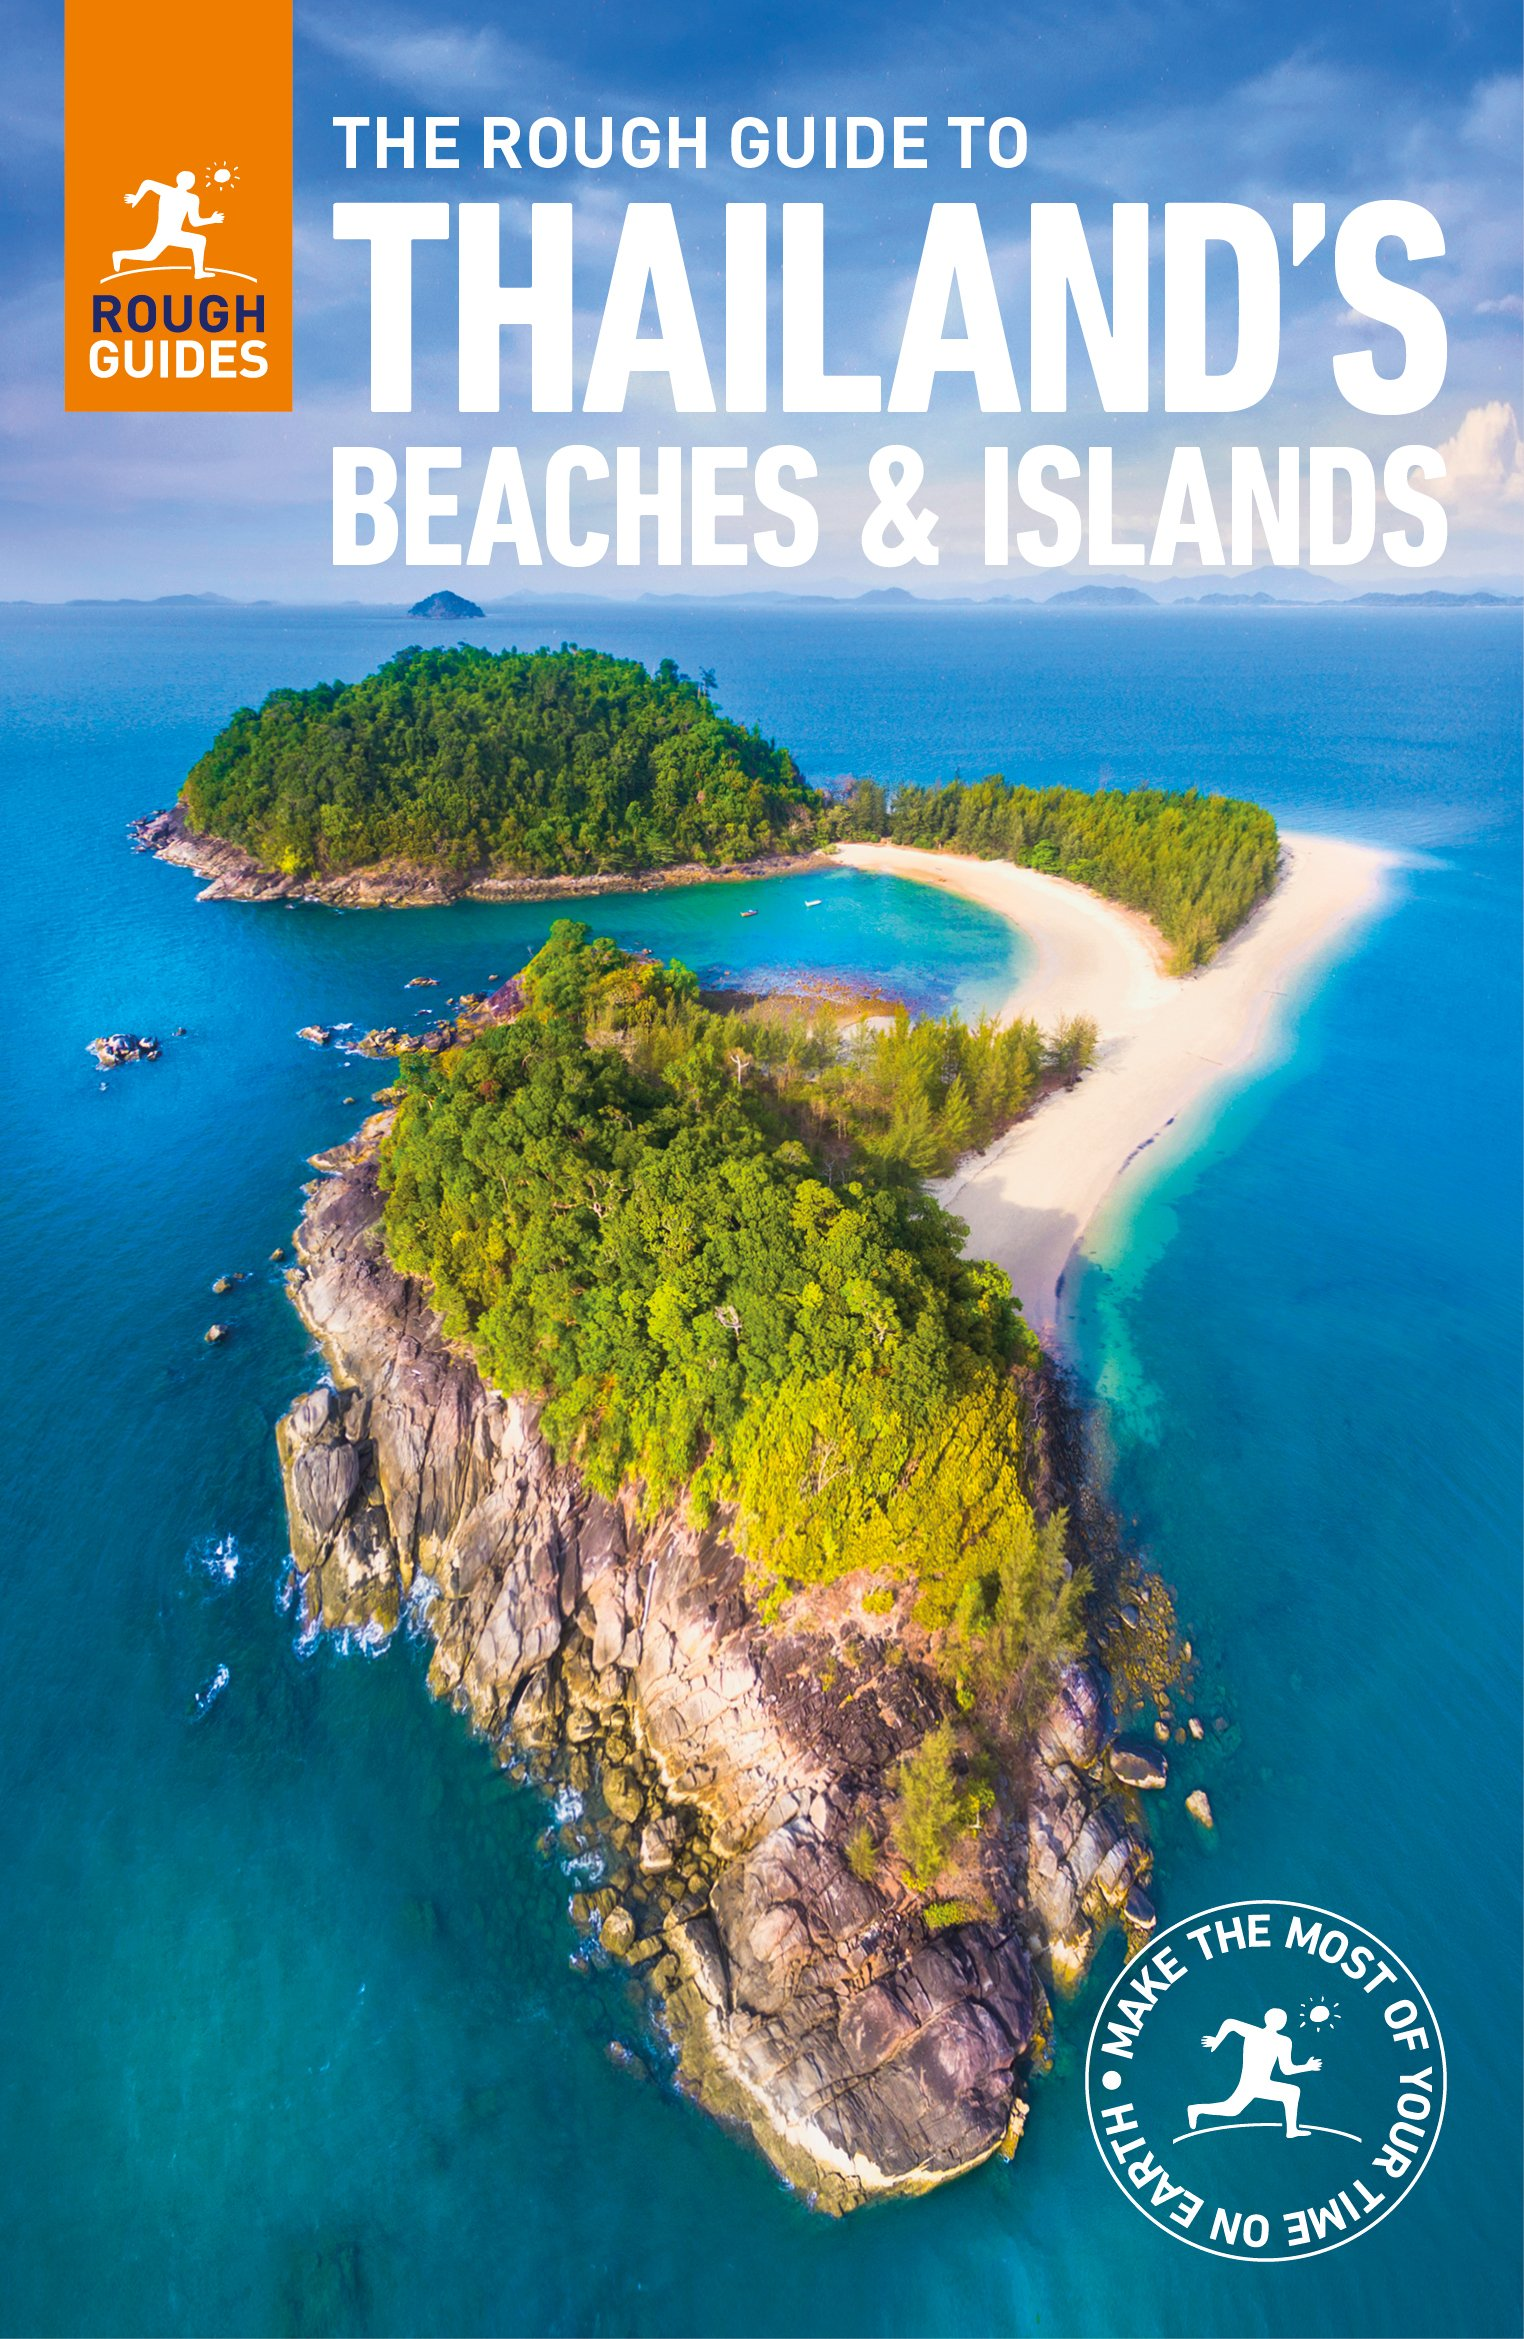 Rough Guide Thailand Beaches + Islands 9780241311752  Rough Guide Rough Guides  Reisgidsen Thailand